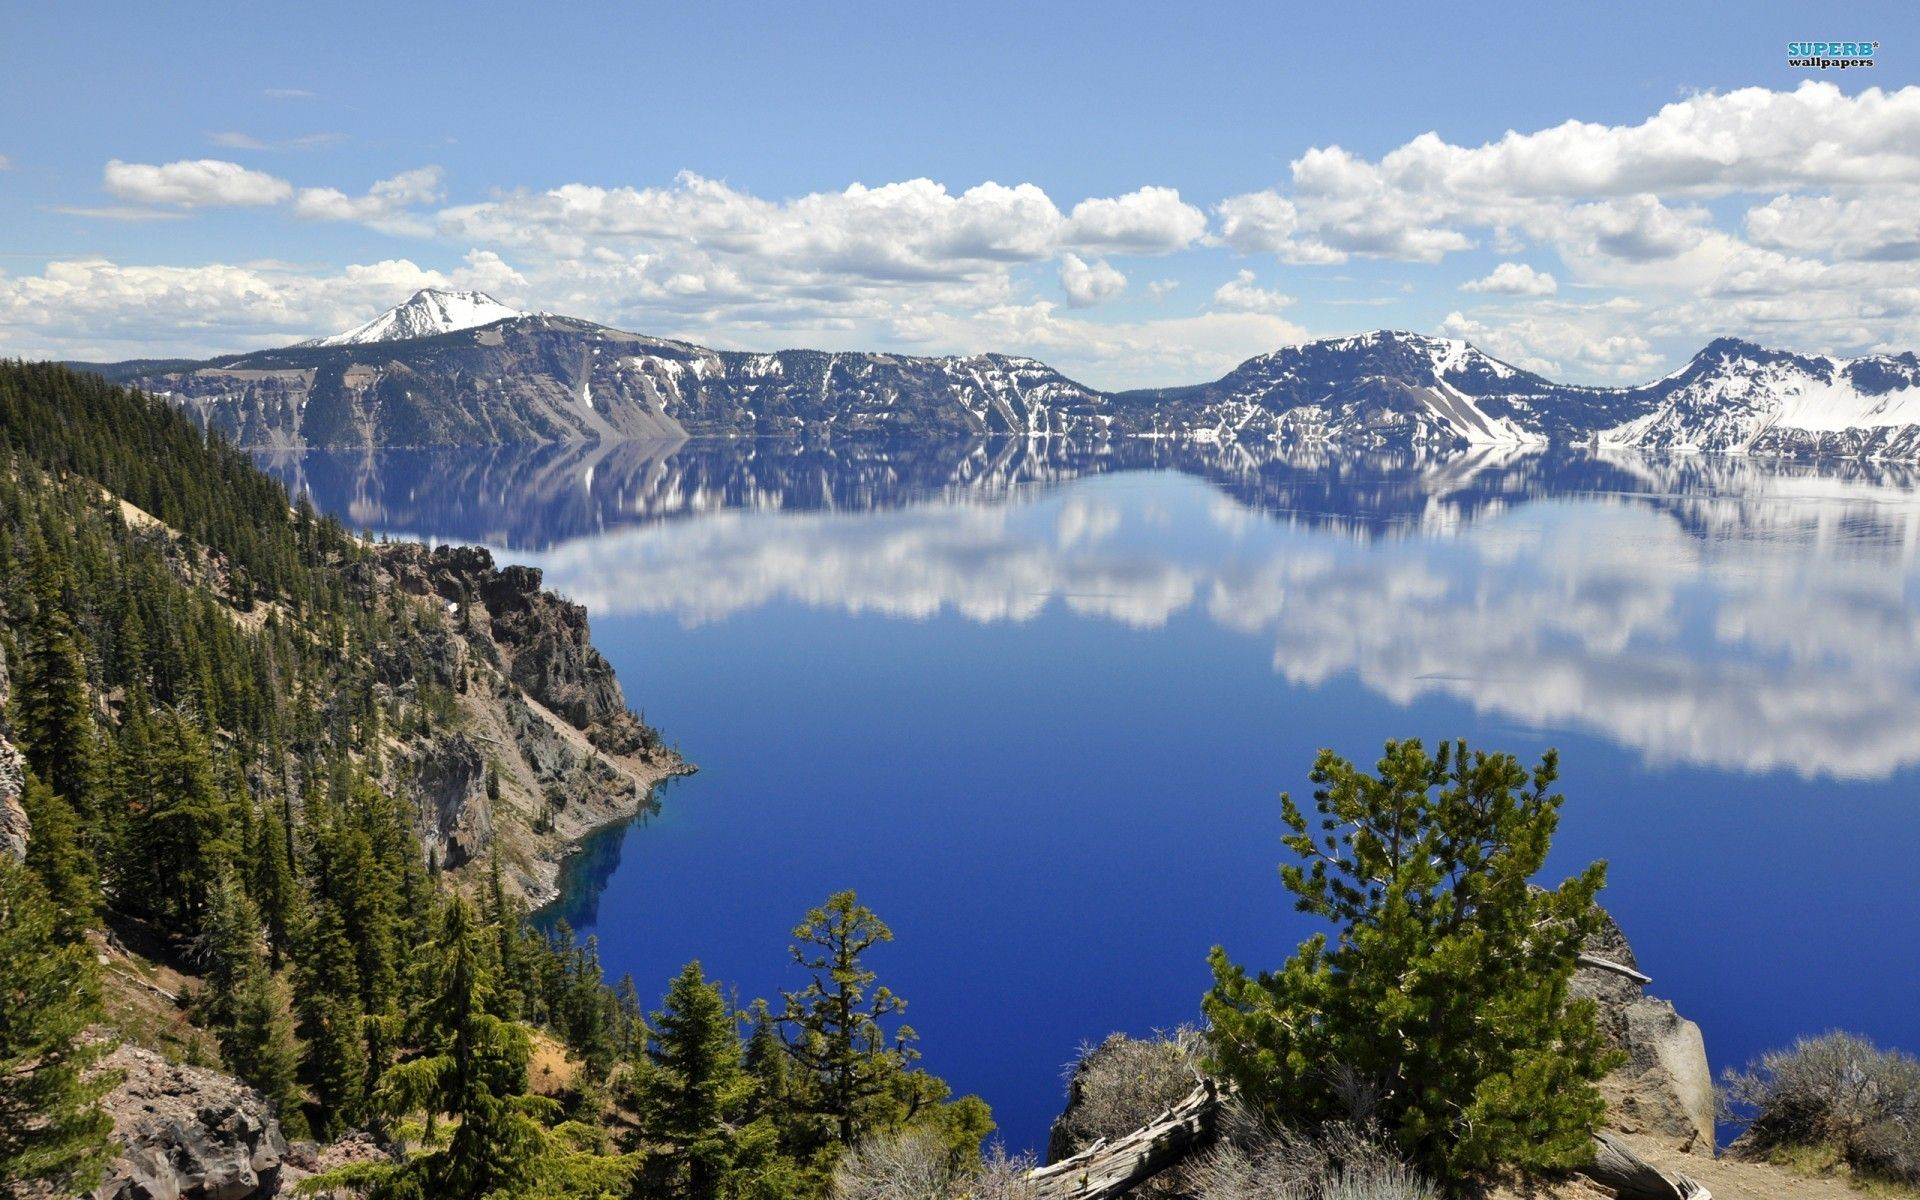 crater lake | crater lake wallpaper 1920x1200 | cool geology